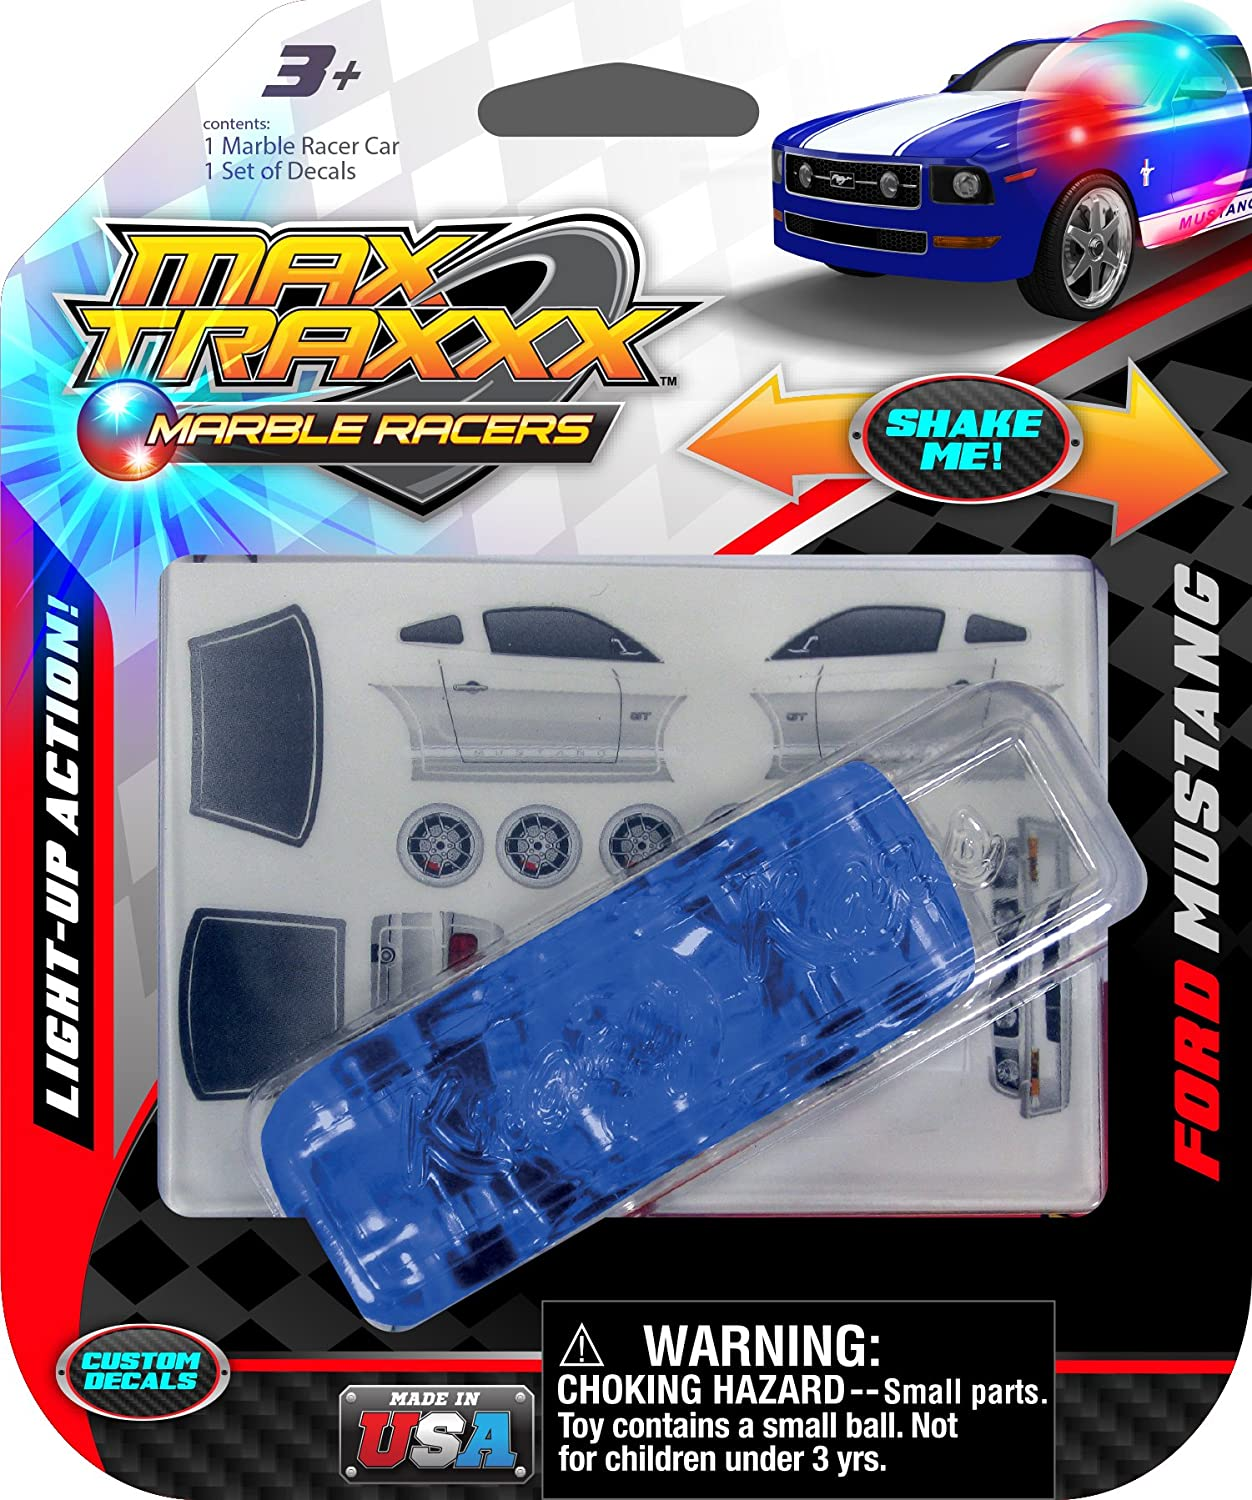 Max Traxxx Ford Mustang Light Up Marble Racer Car B00LH4BYXU